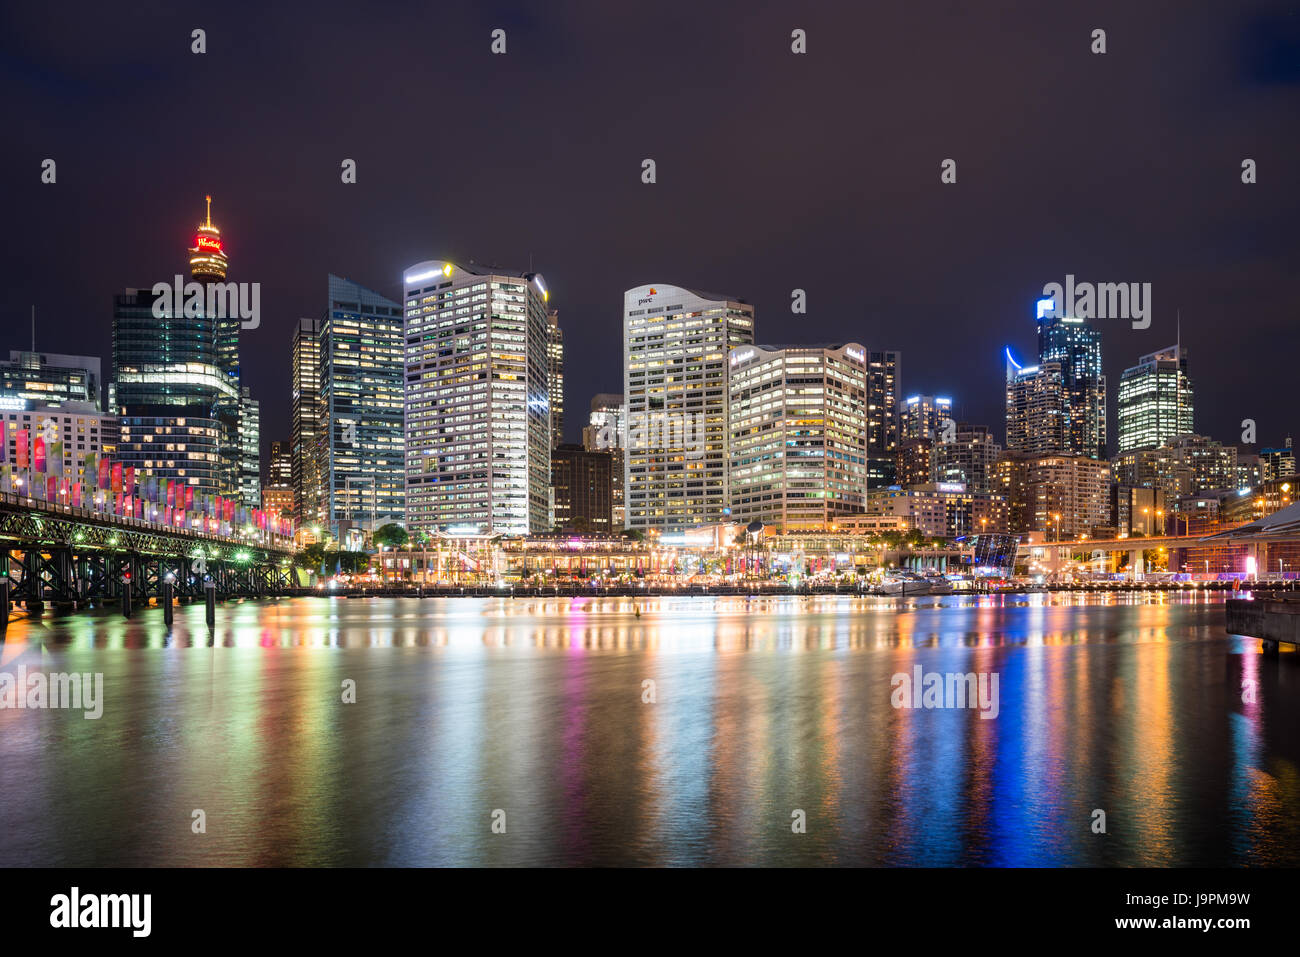 Cockle bay, Darling Harbour at dusk. Sydney, NSW, Australia. - Stock Image